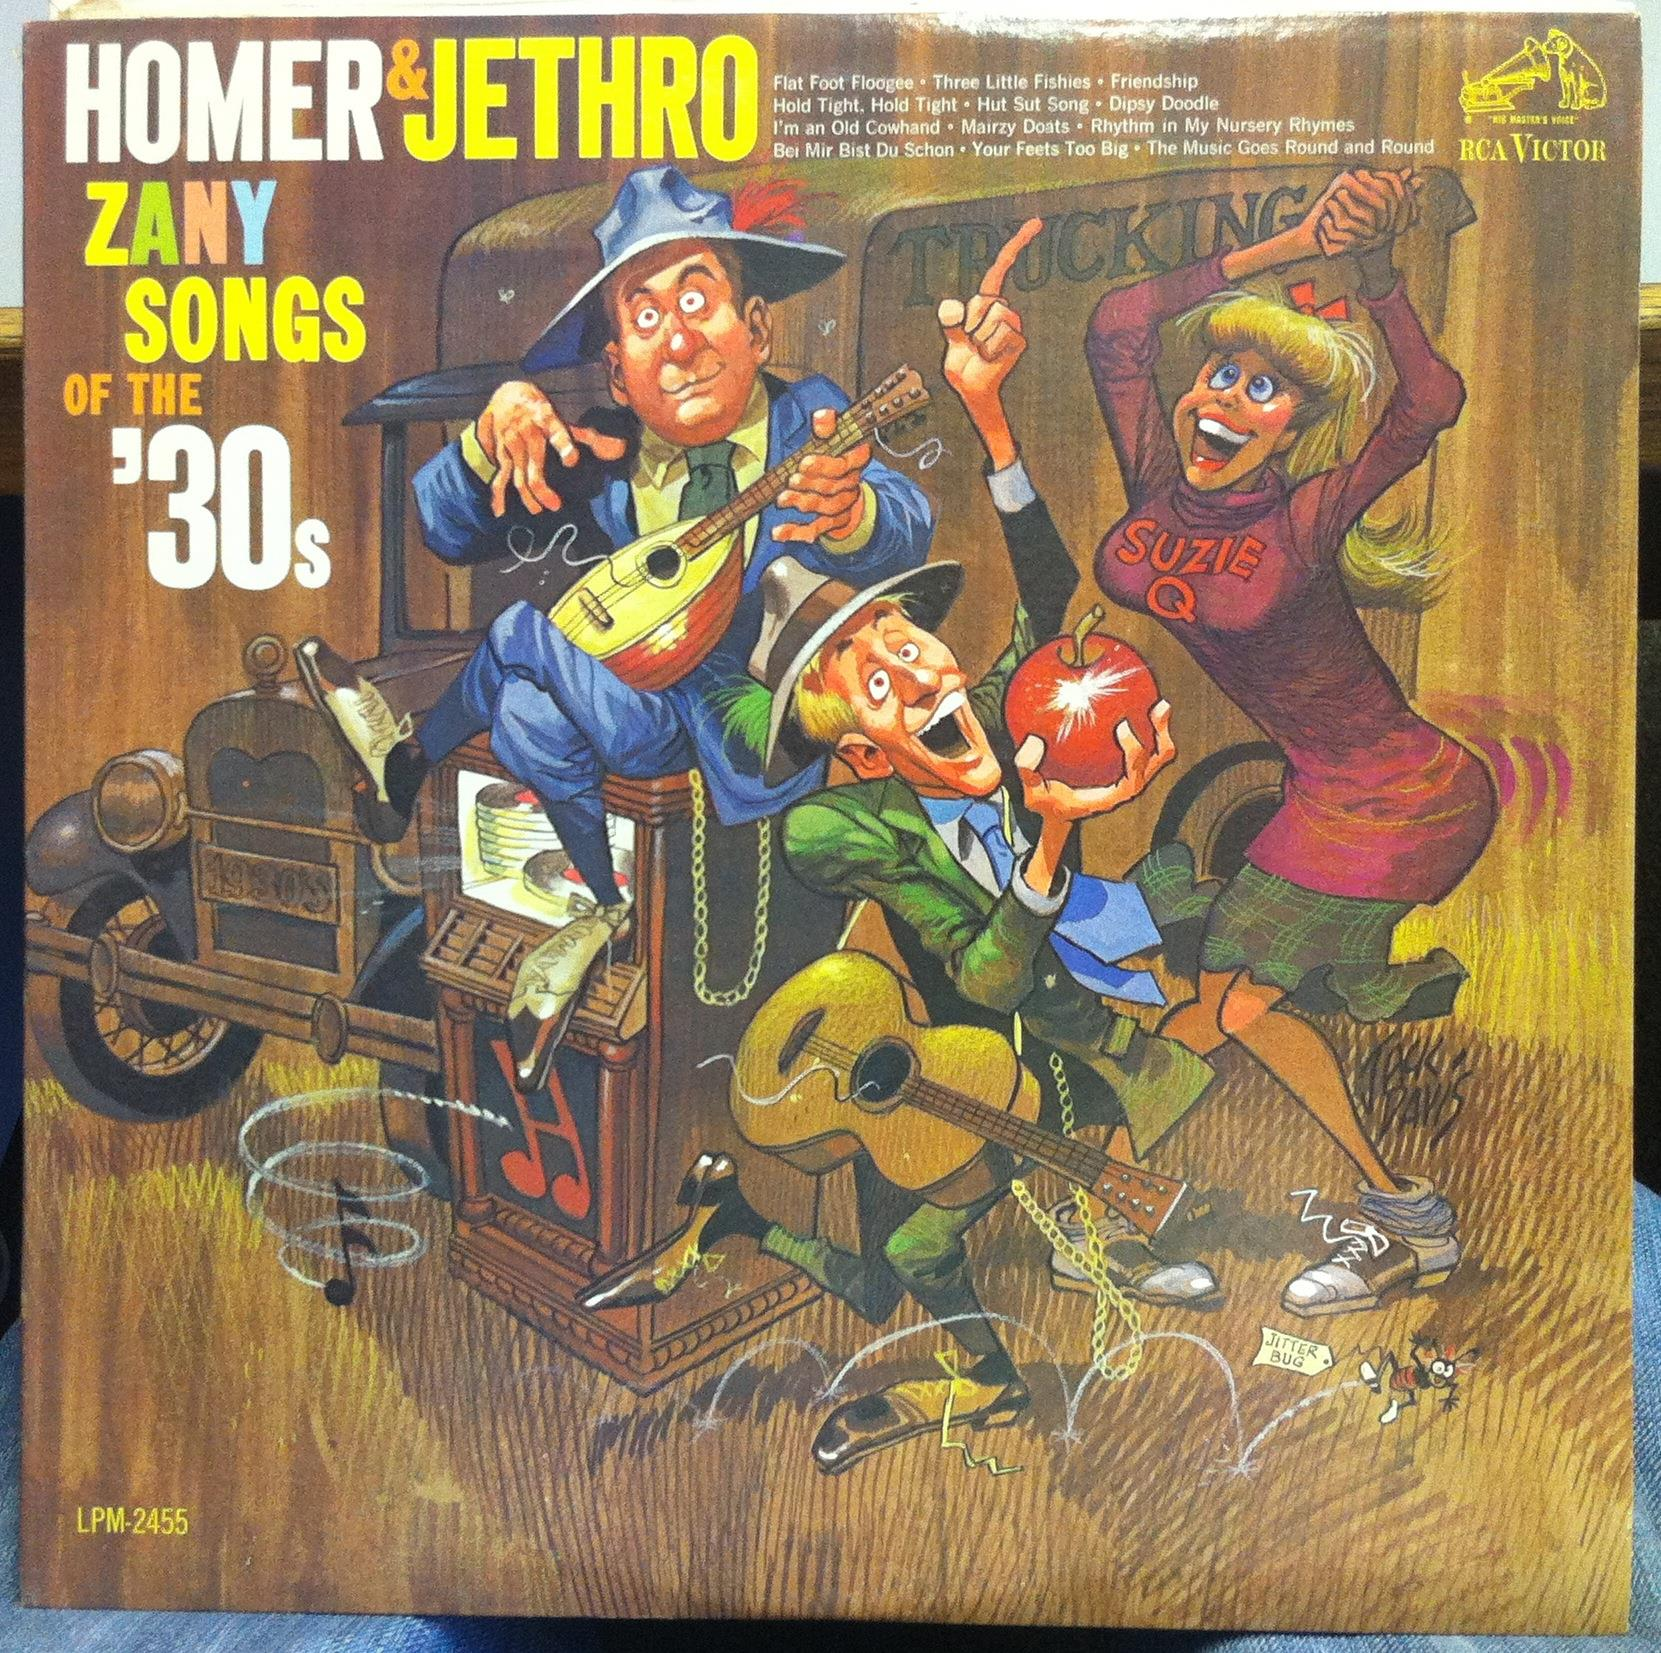 HOMER & JETHRO - Homer & Jethro Zany Songs Of The '30's Lp Vg+ Lpm-2455 Rca 1s/1s 1963 Record (zany Songs Of The